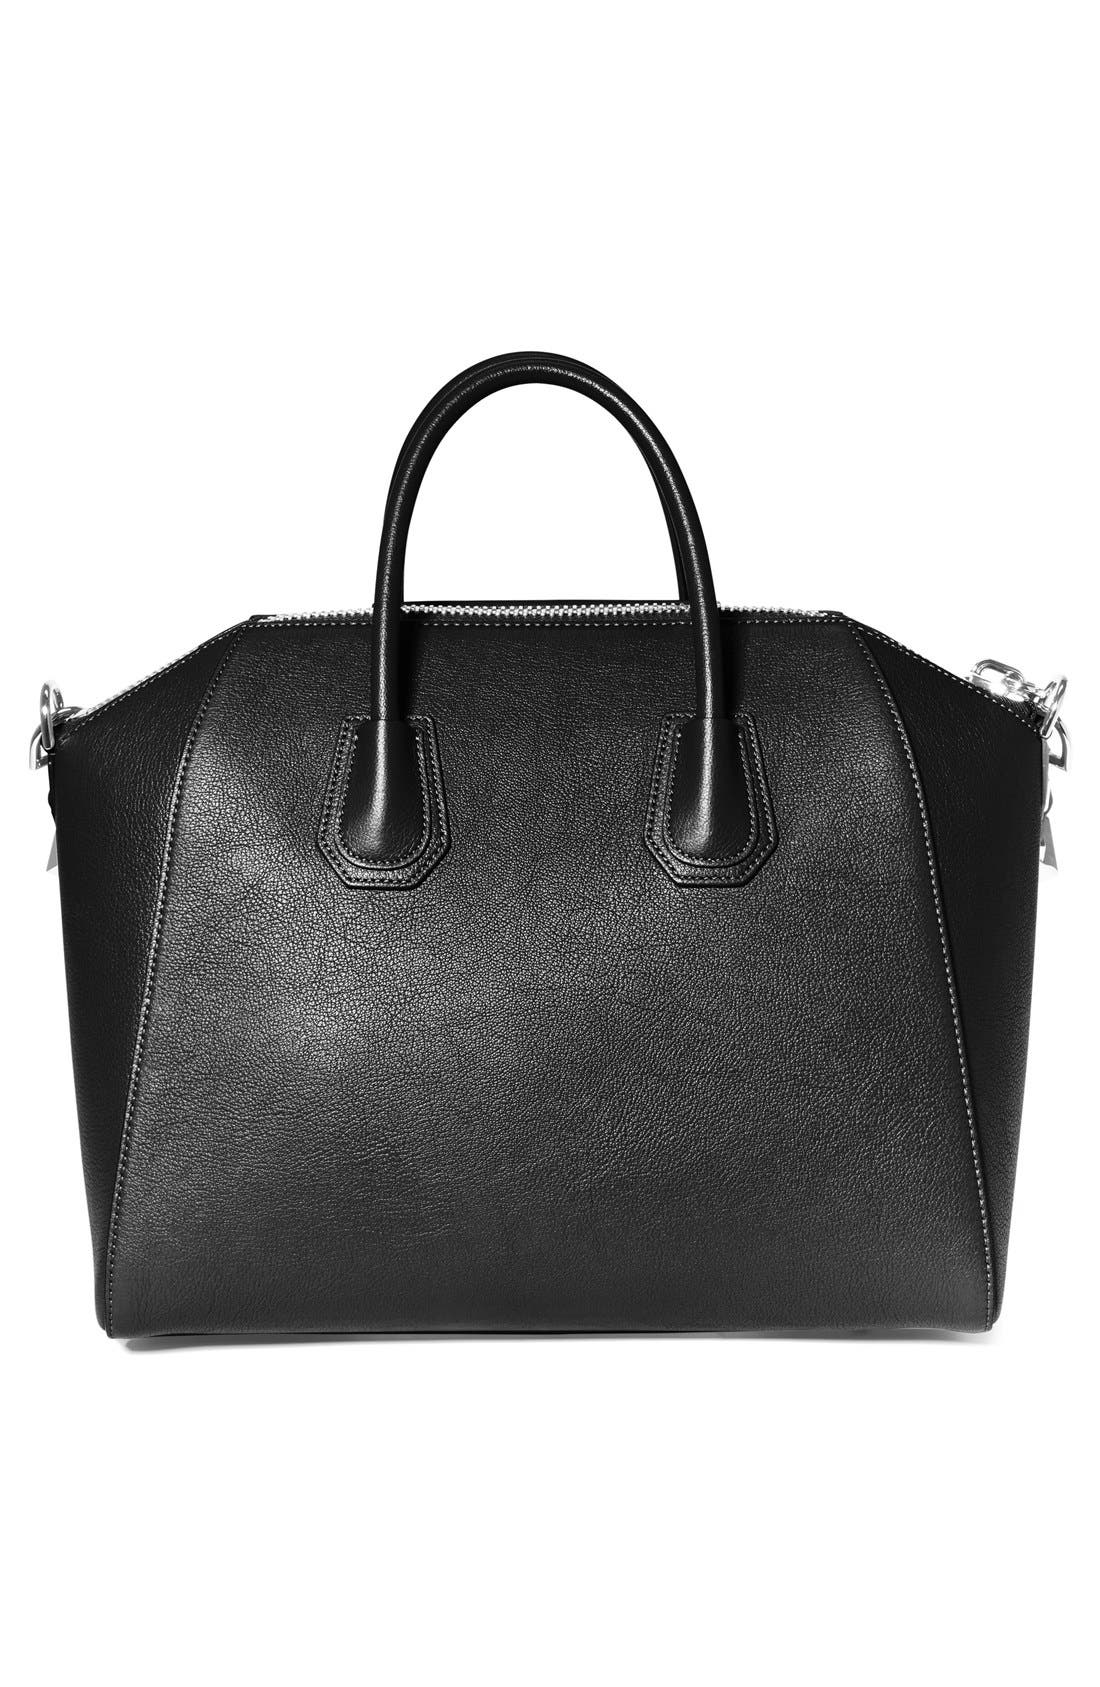 Alternate Image 3  - Givenchy 'Medium Antigona' Sugar Leather Satchel